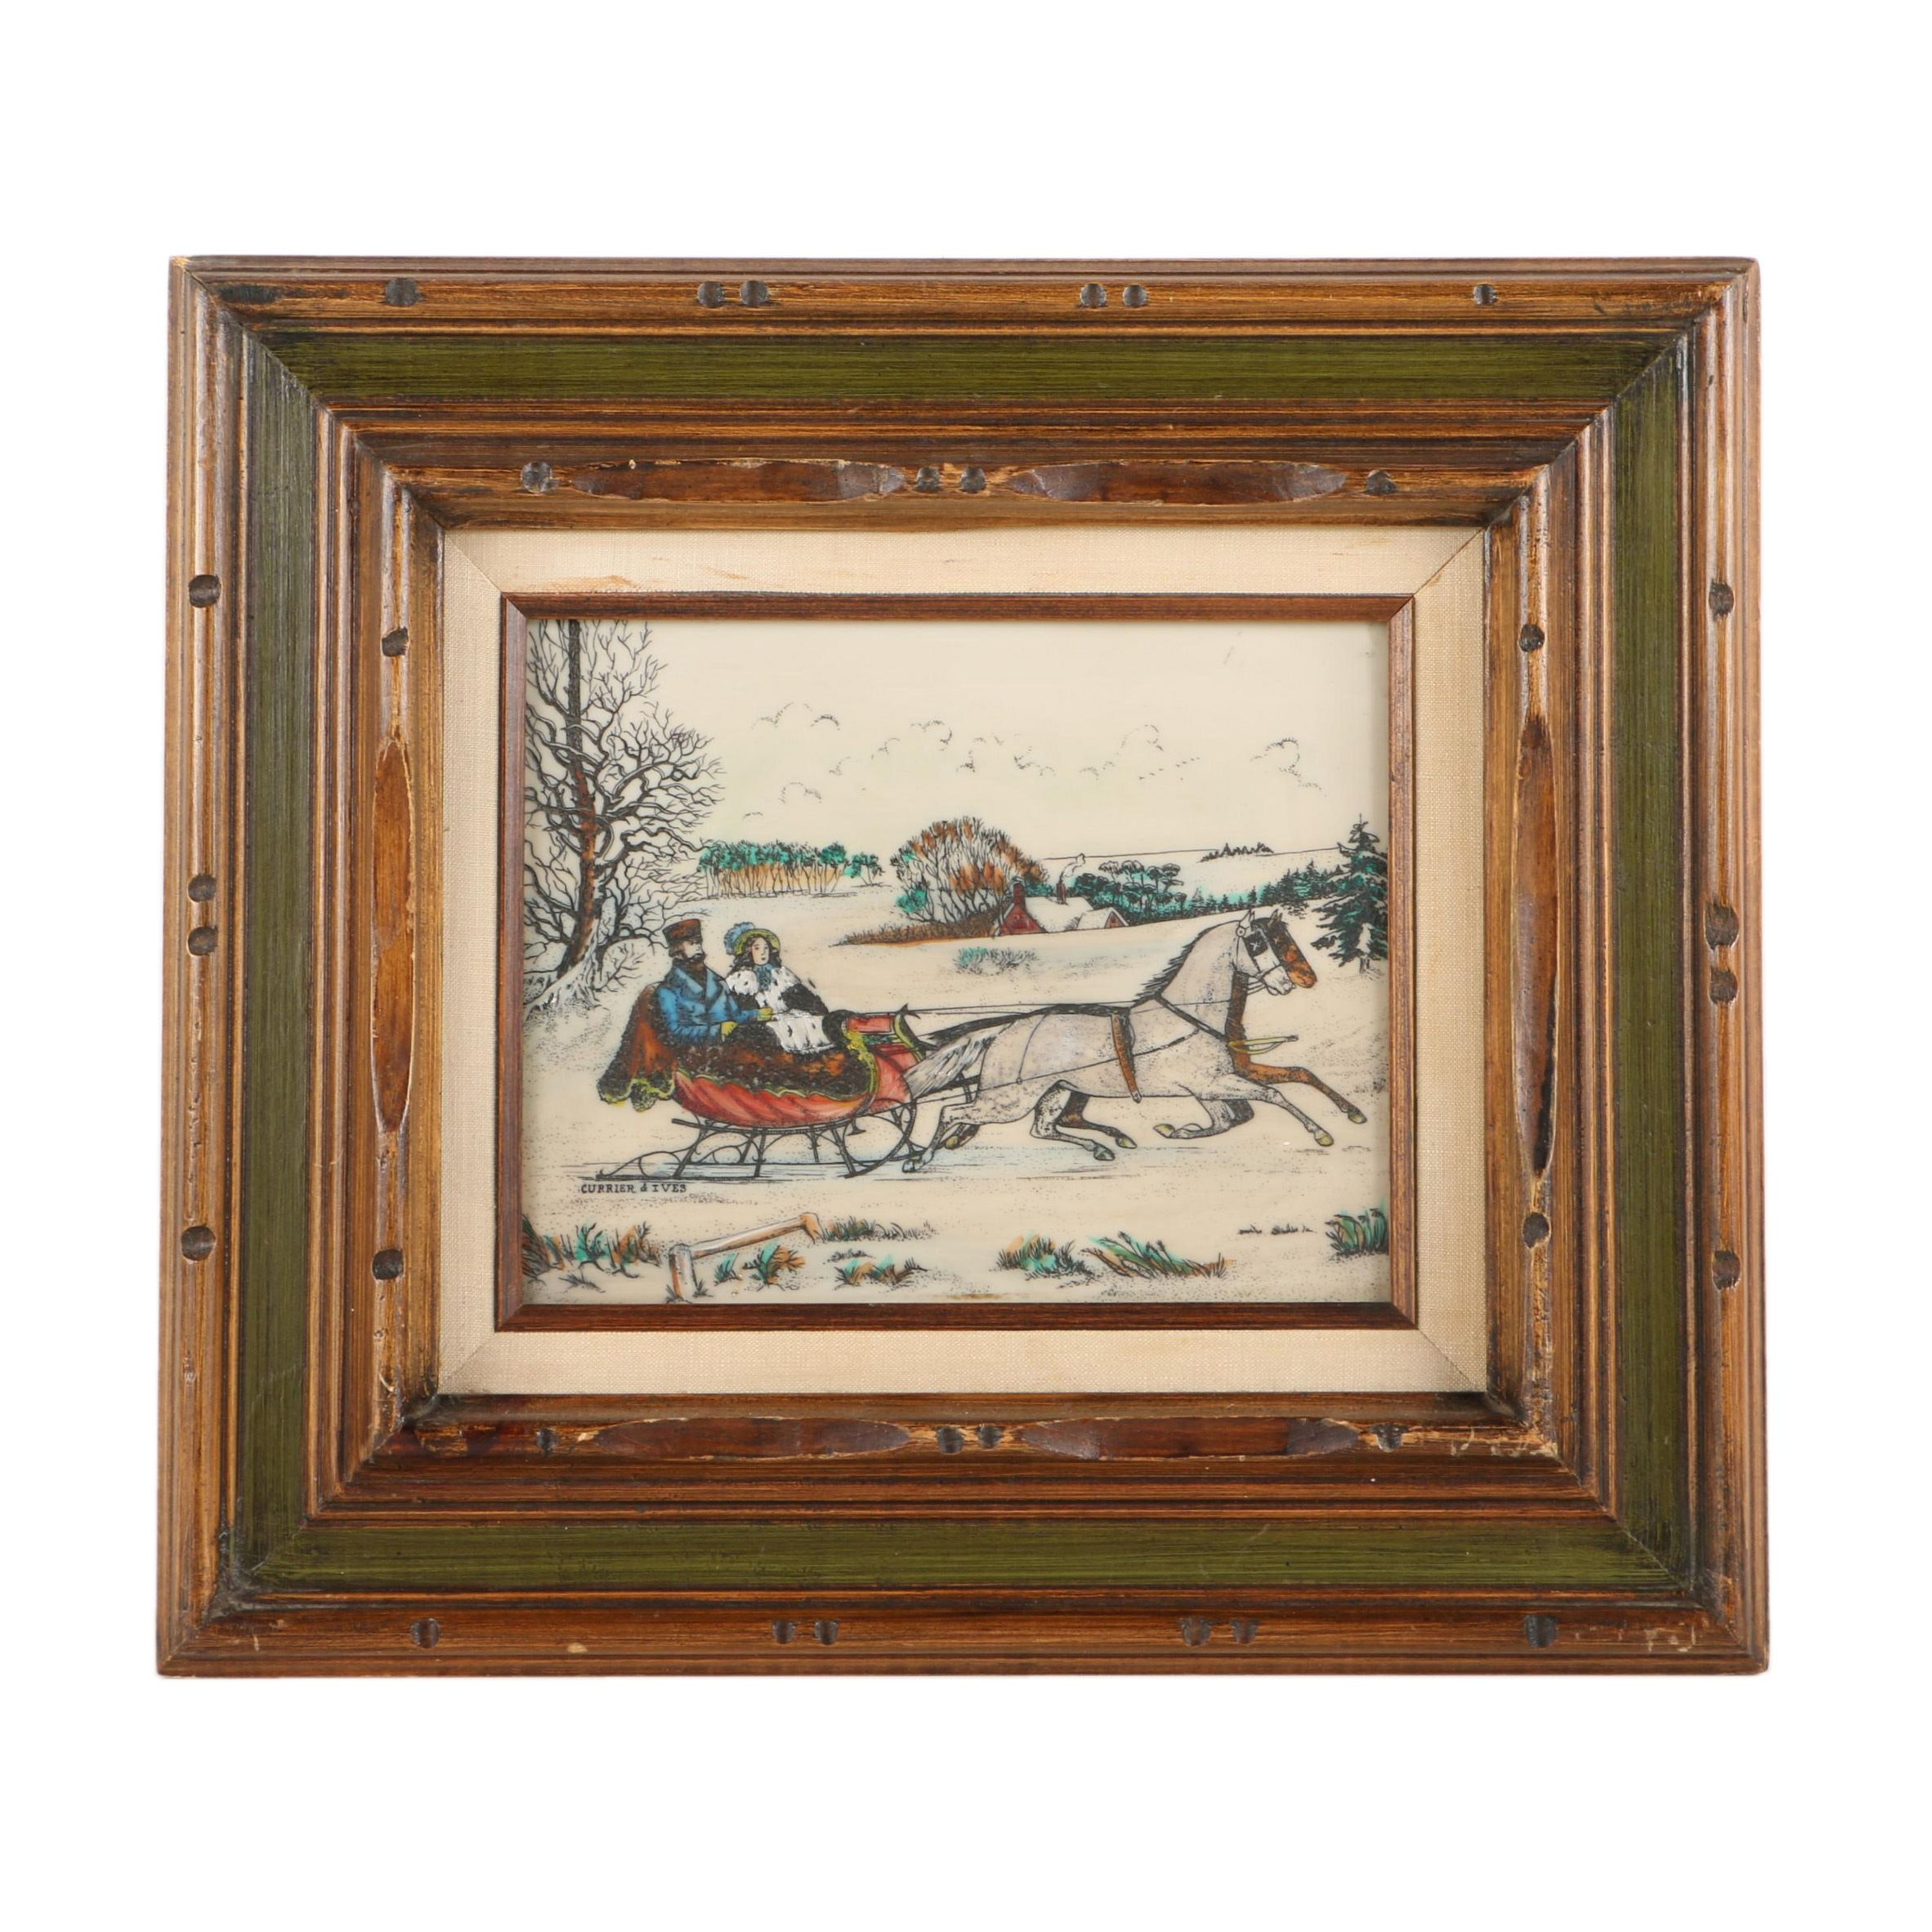 Reproduction Currier & Ives Print on Resin